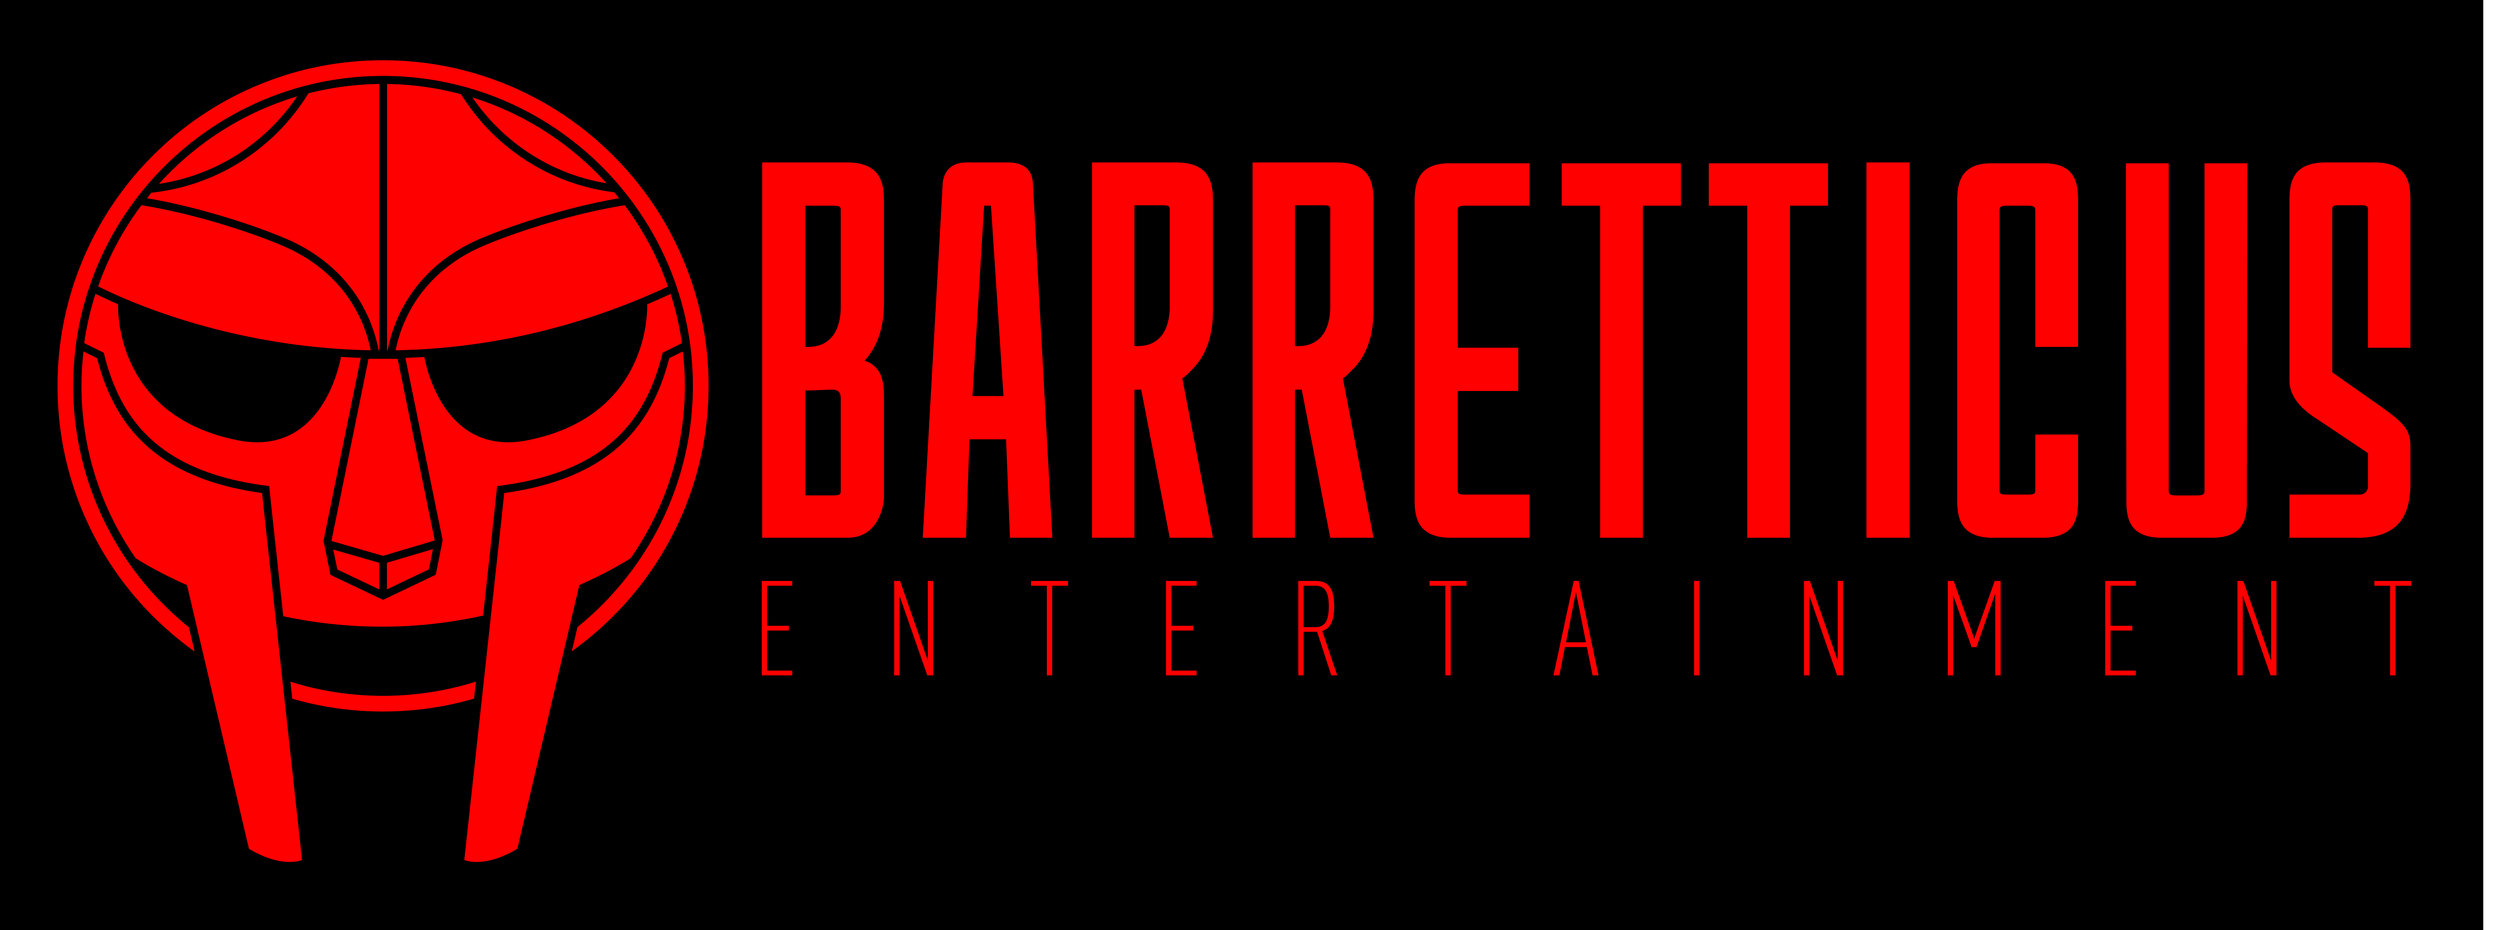 Official_Barretticus_Logo_Full.jpg